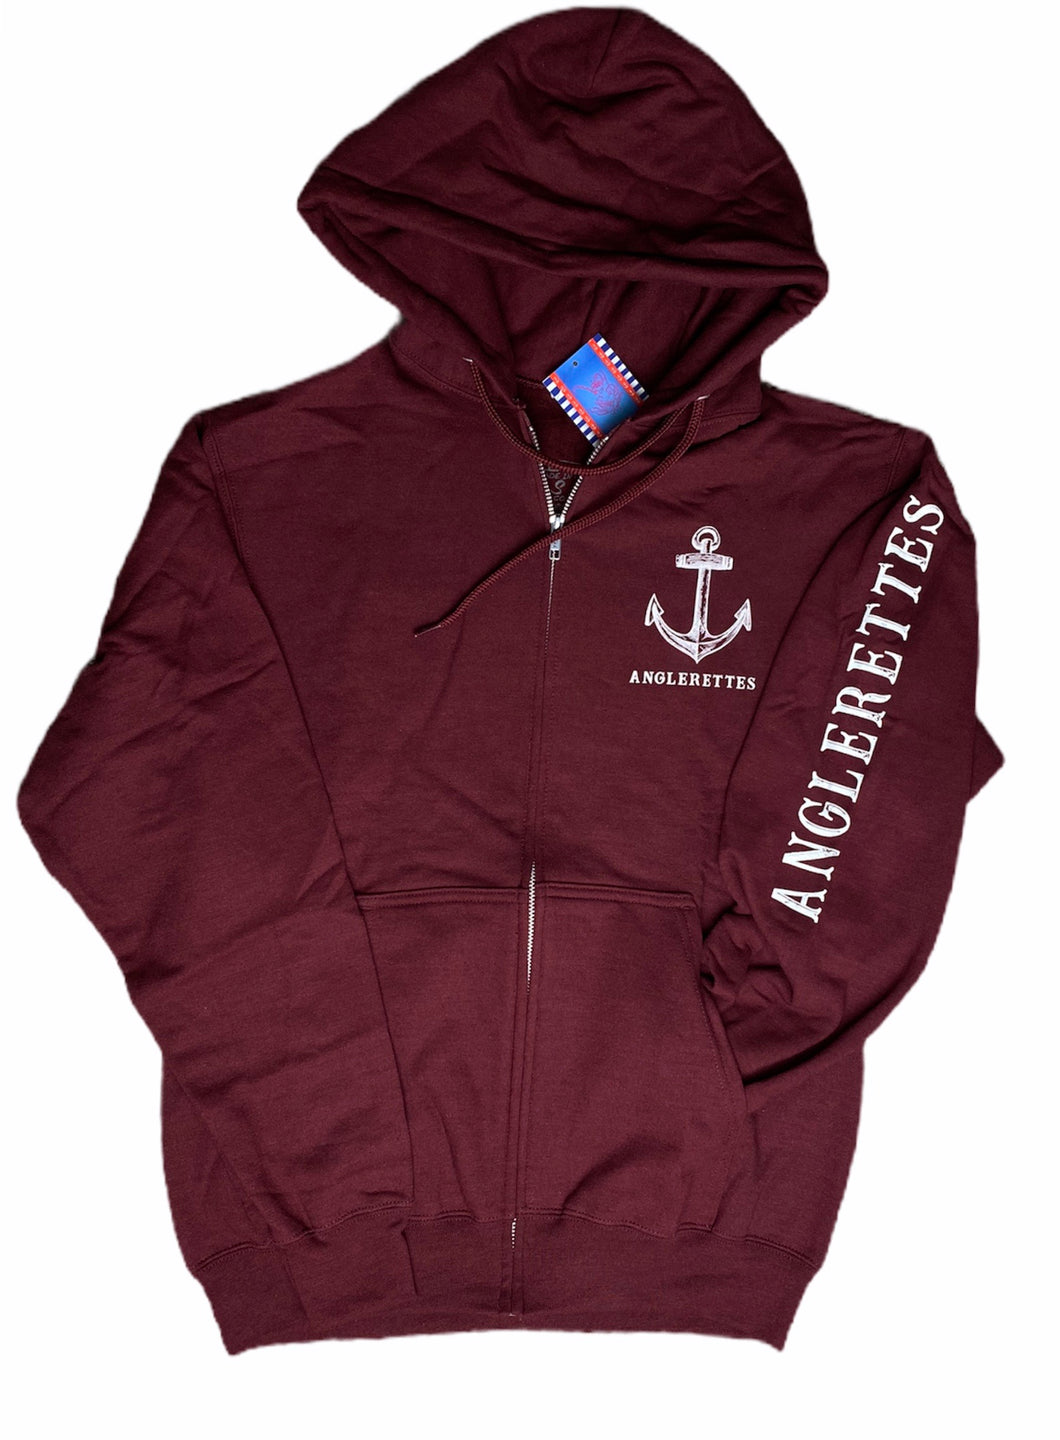 New Support Your Local Anglerettes Zip Up Jacket